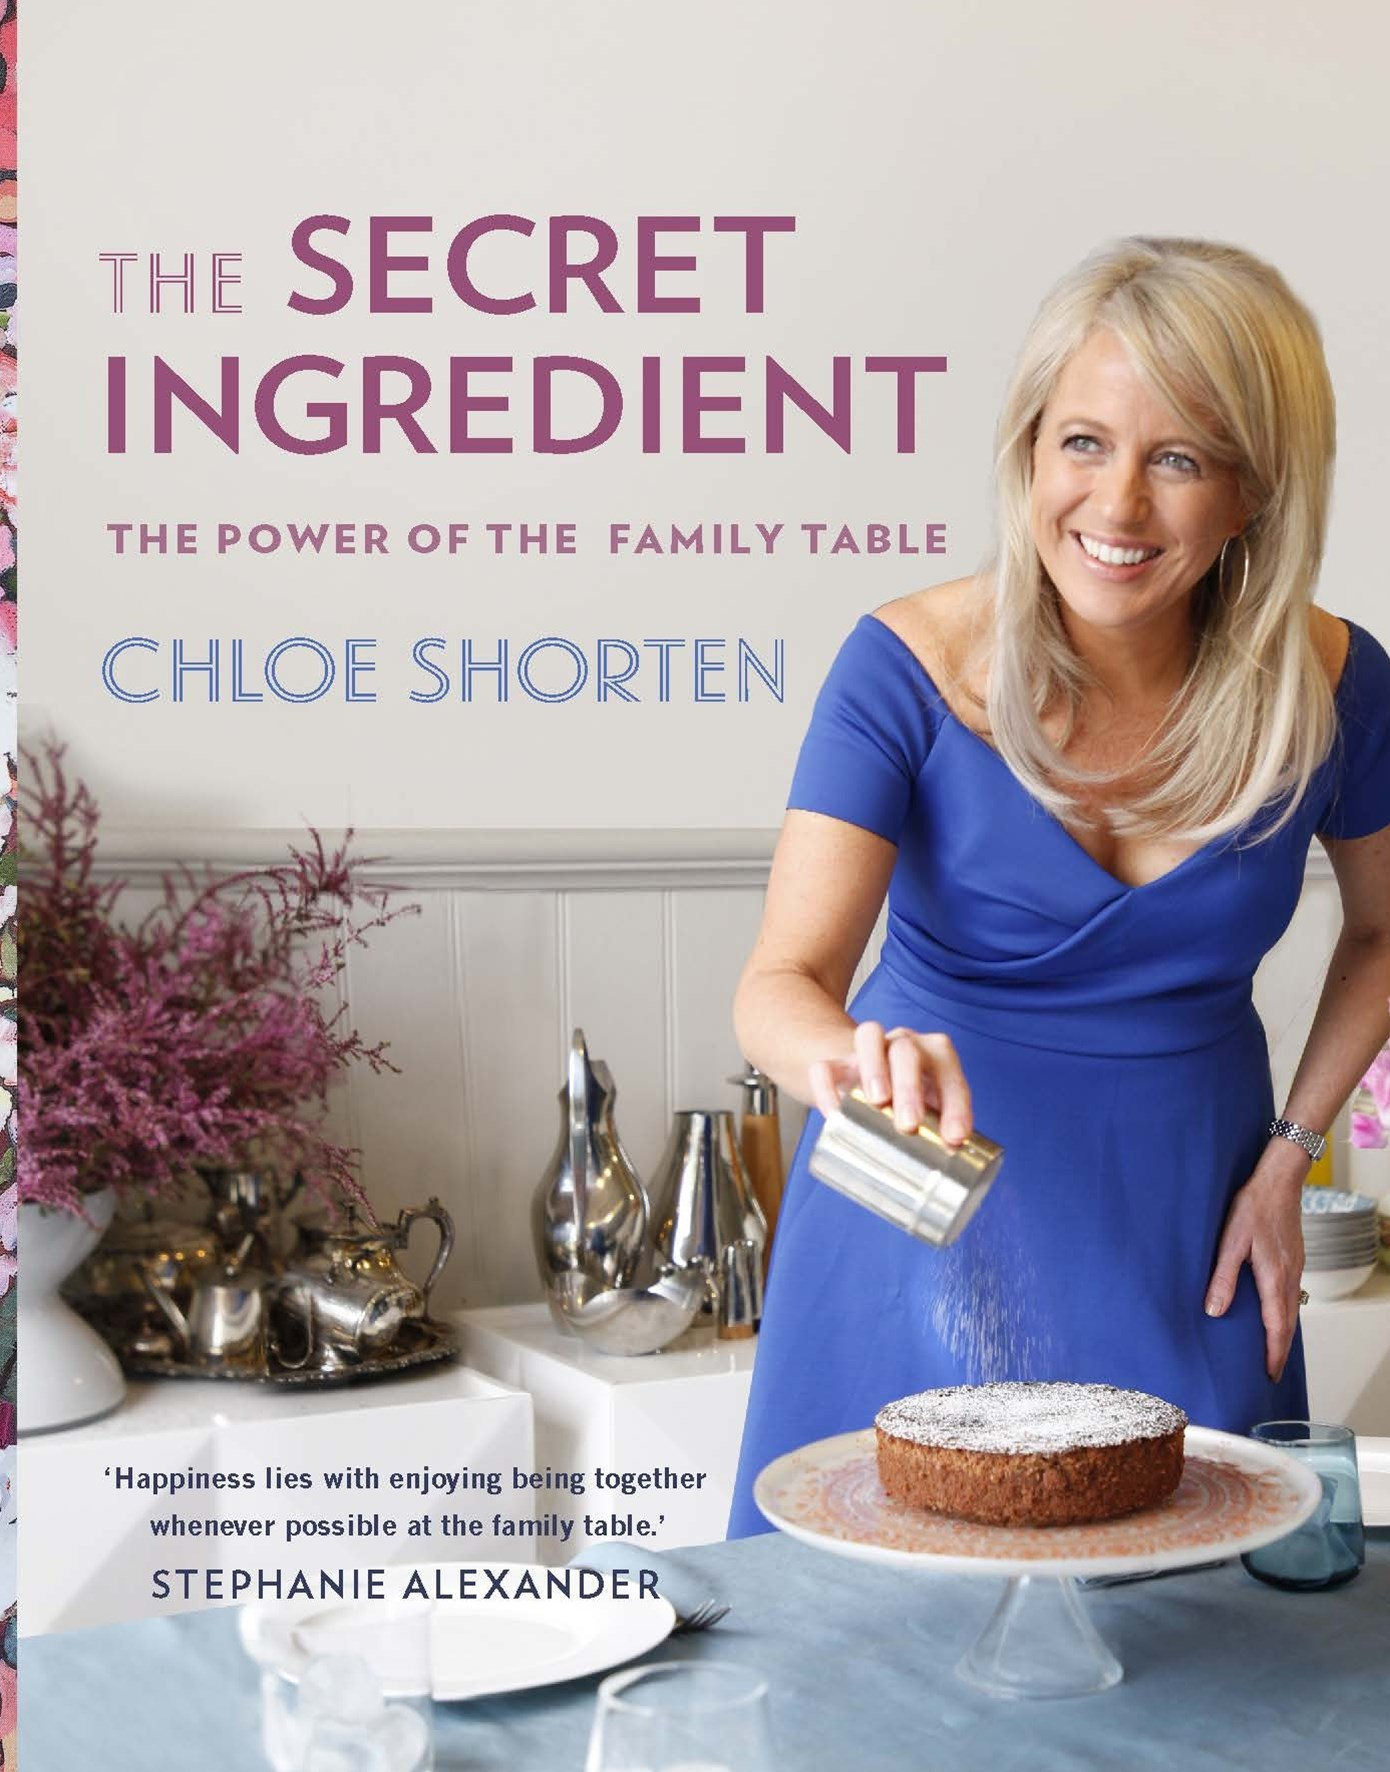 The Secret Ingredient (Signed by Chloe Shorten): The Power of the Family Table